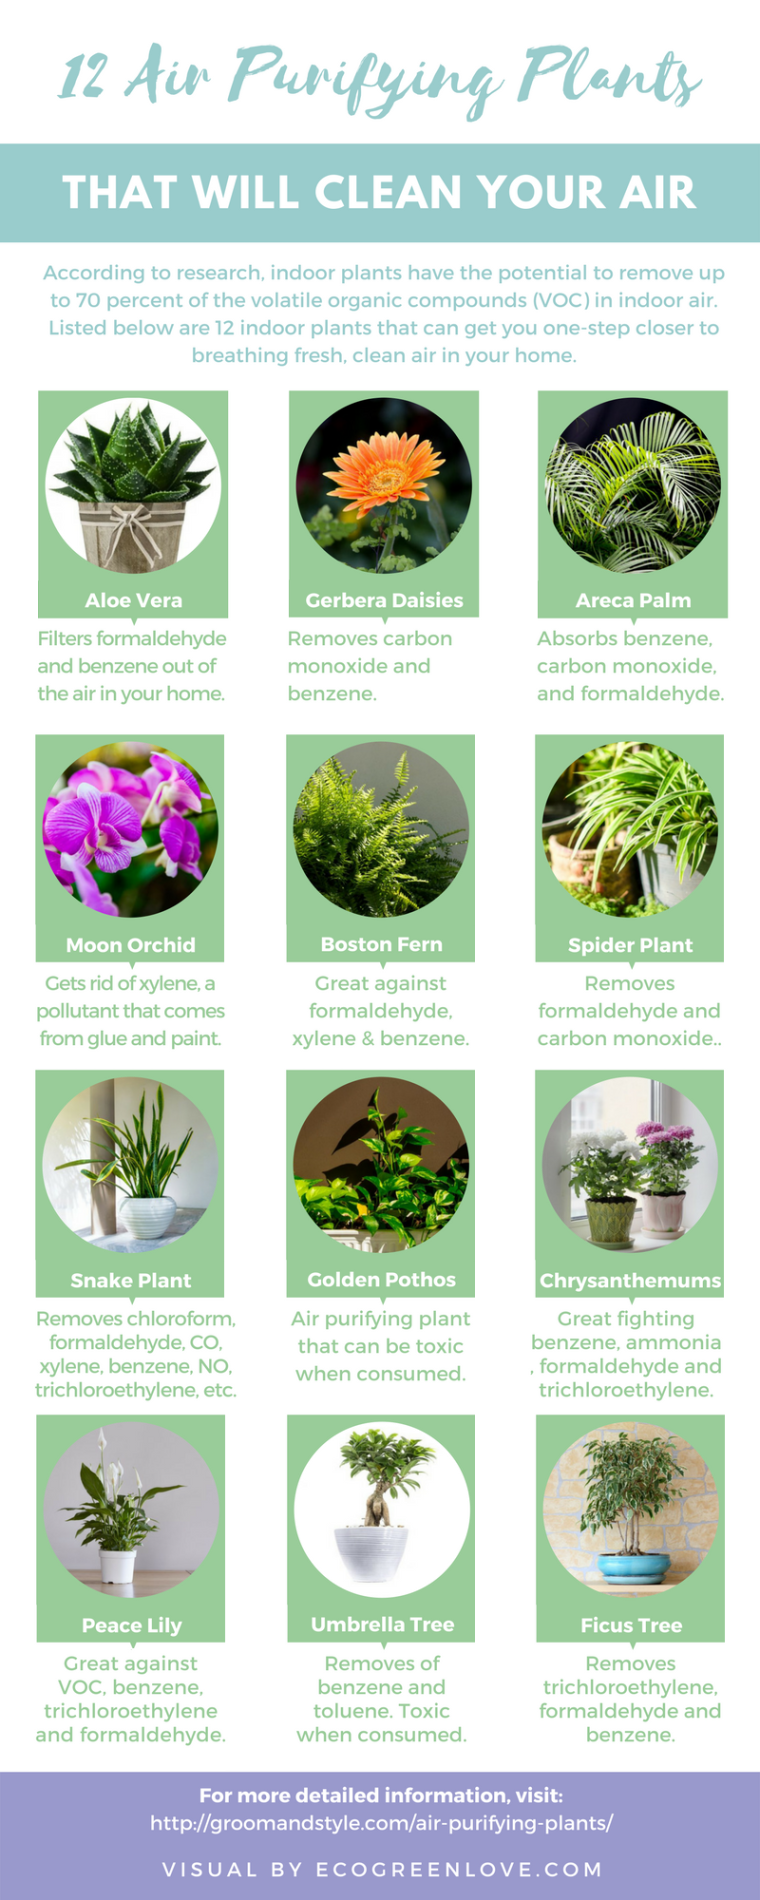 12 Air Purifying Houseplants [Infographic] | ecogreenlove